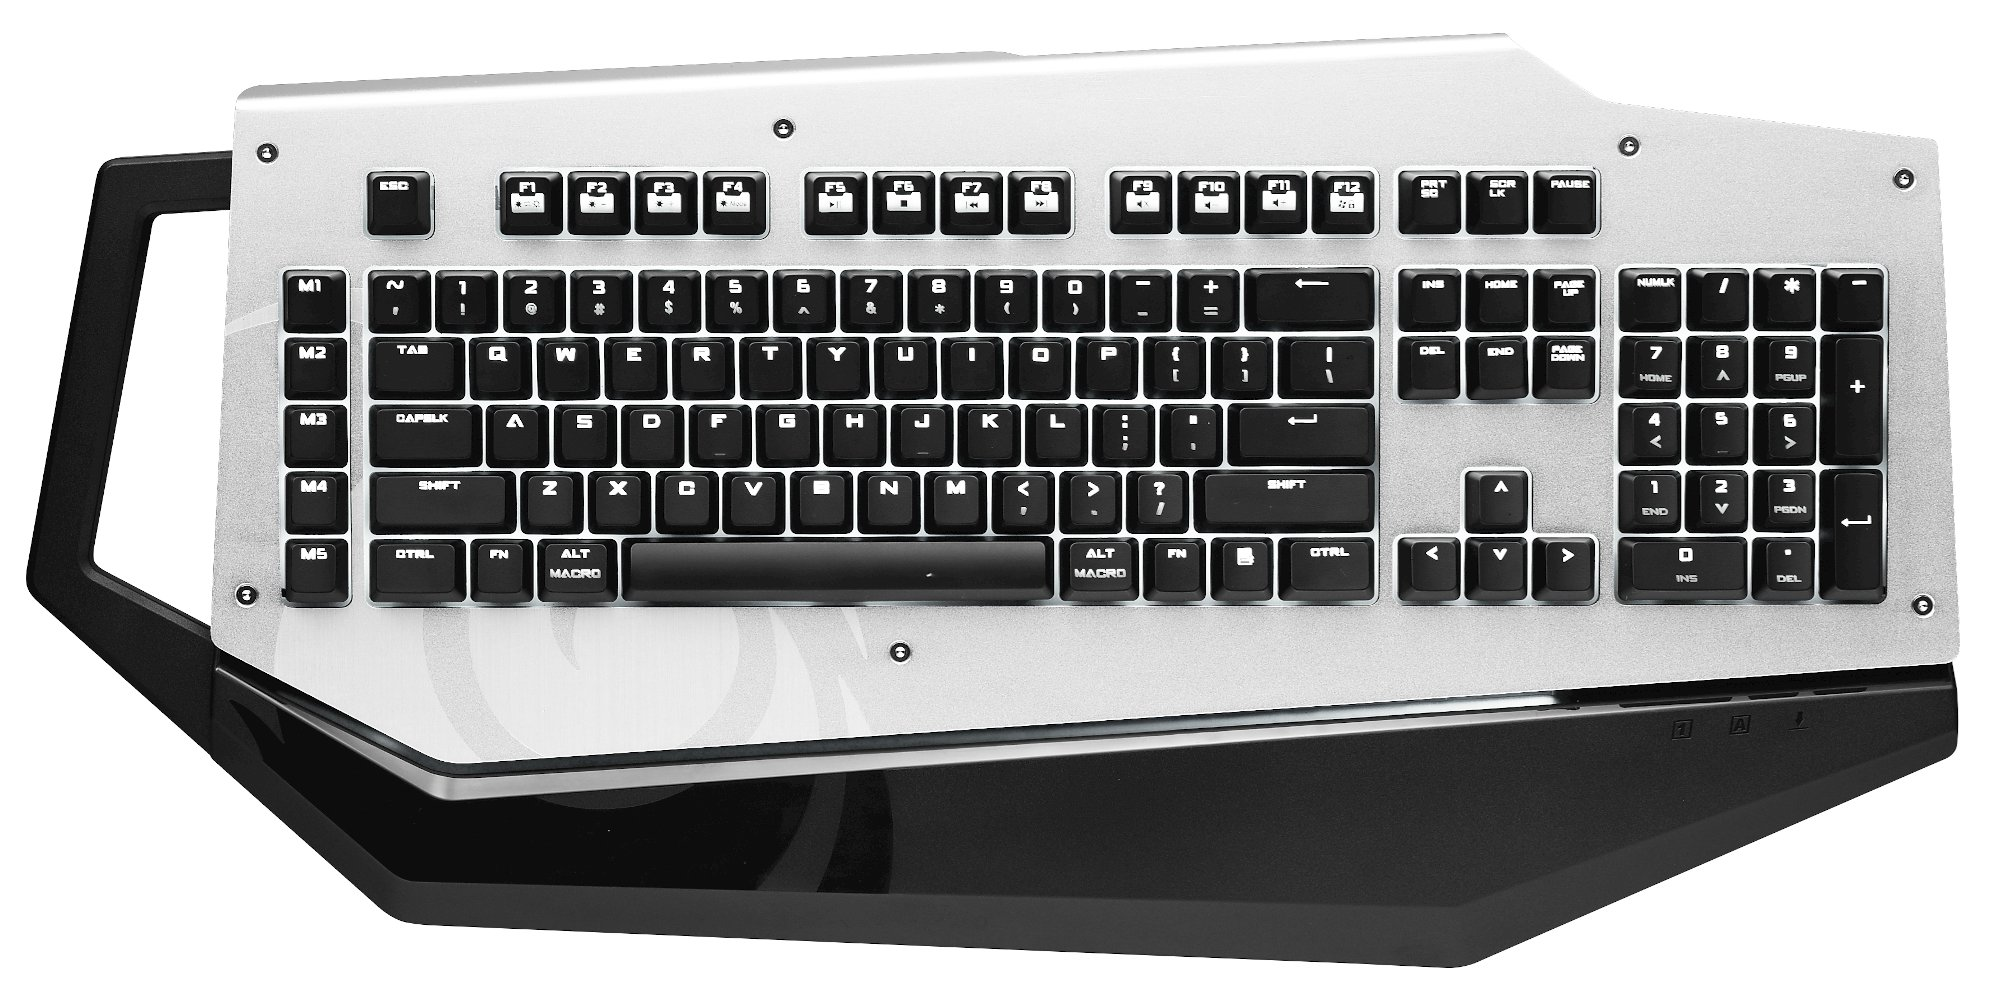 Coolermaster MECH gaming keyboard